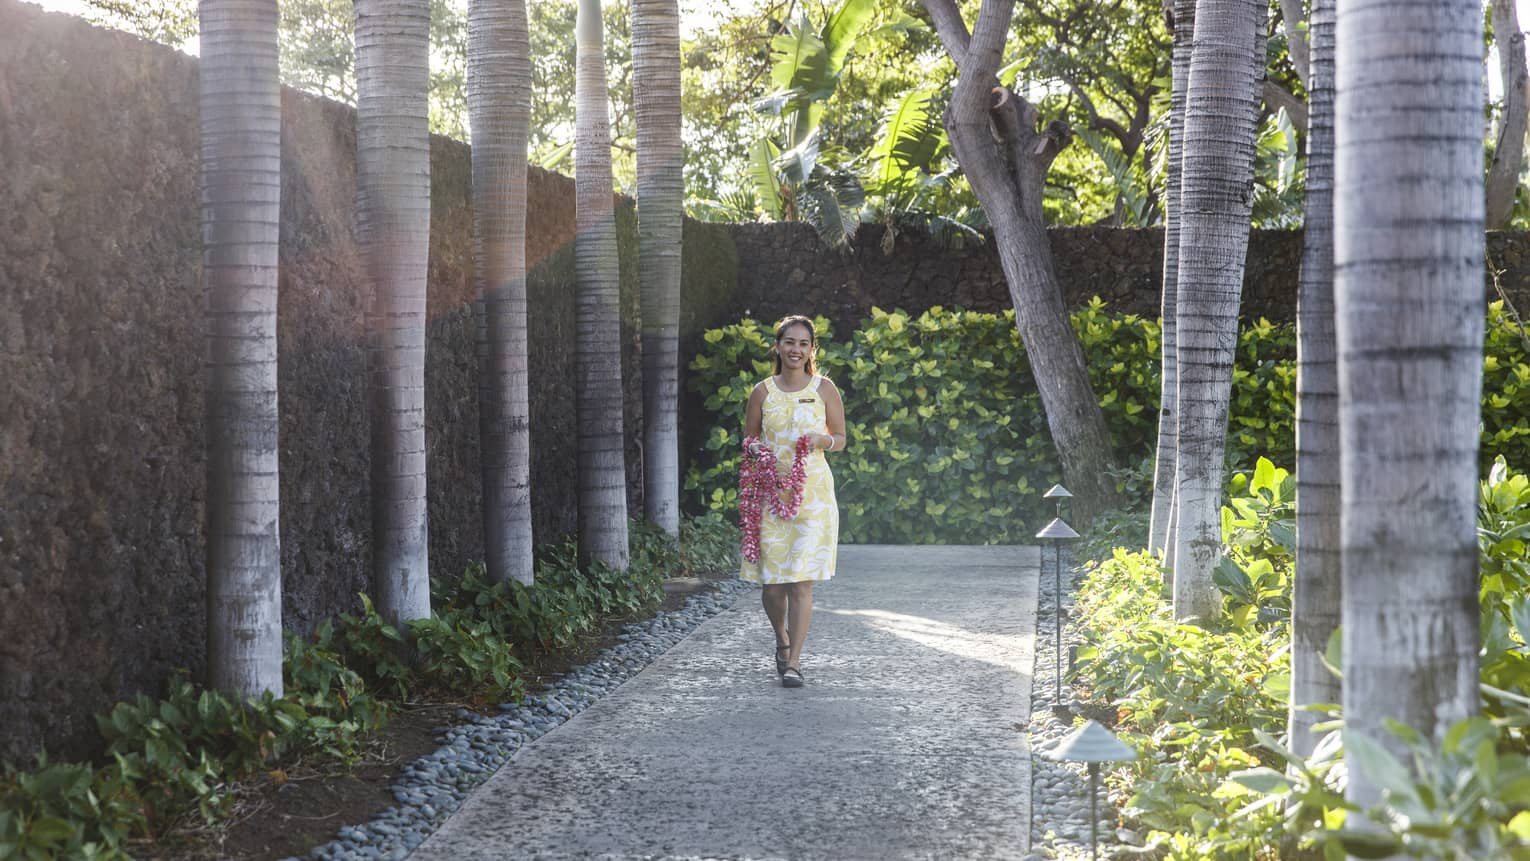 Hotel staff holding fresh flower lei necklace walks down garden path